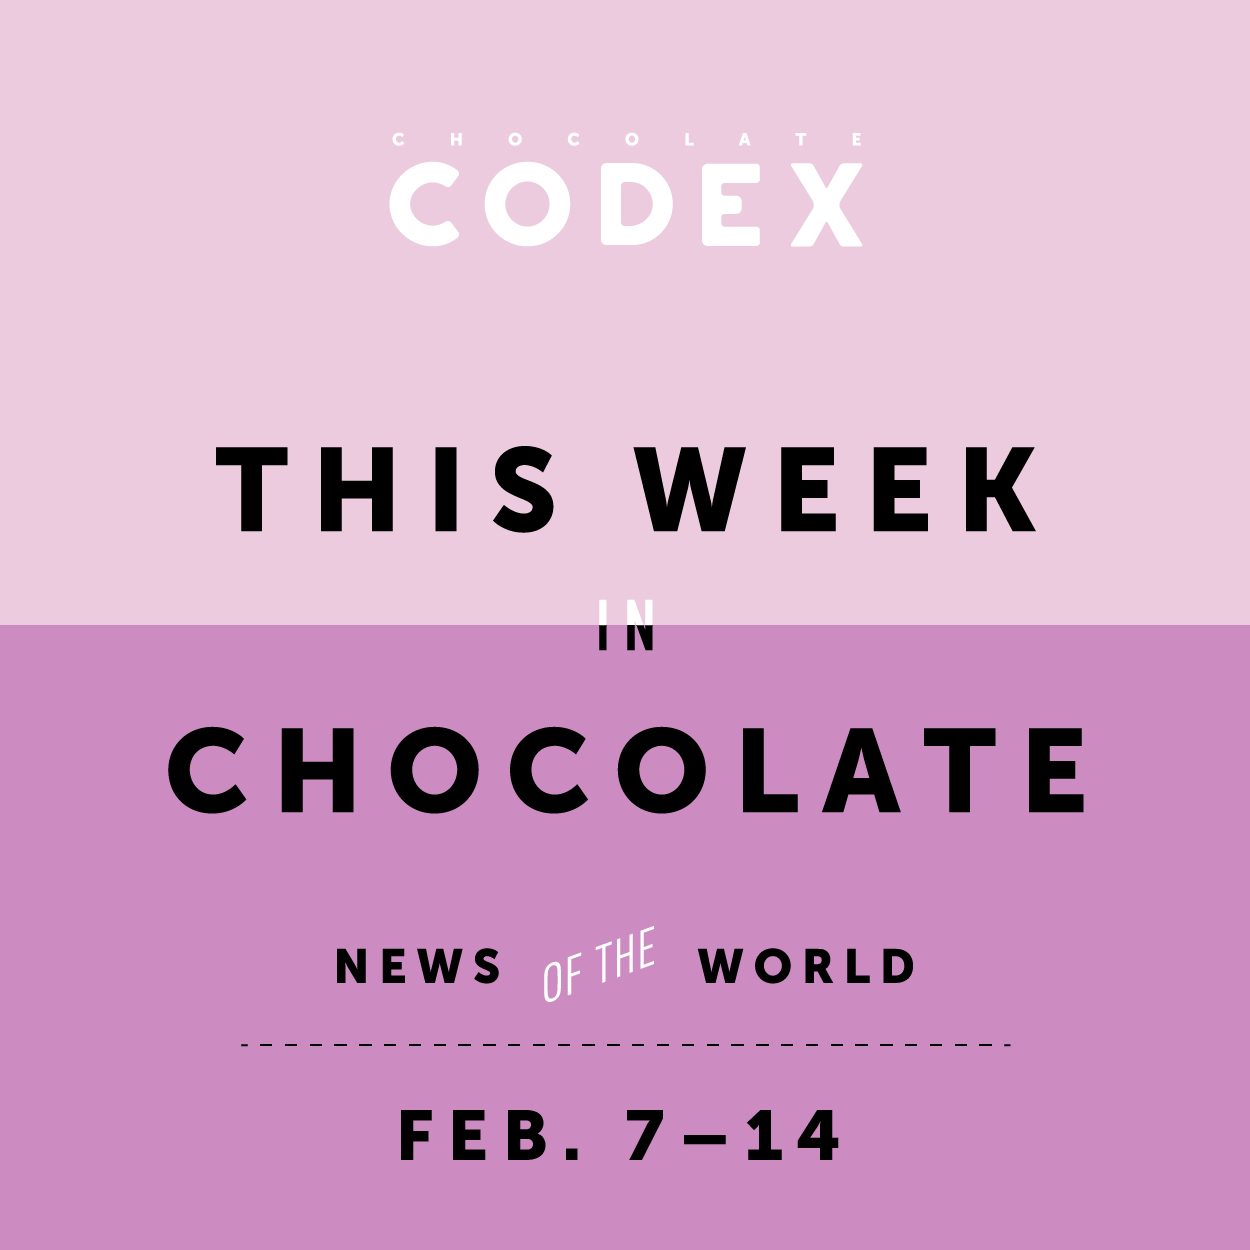 ChocolateCodex_ThisWeek_Chocolate_News_2016_07